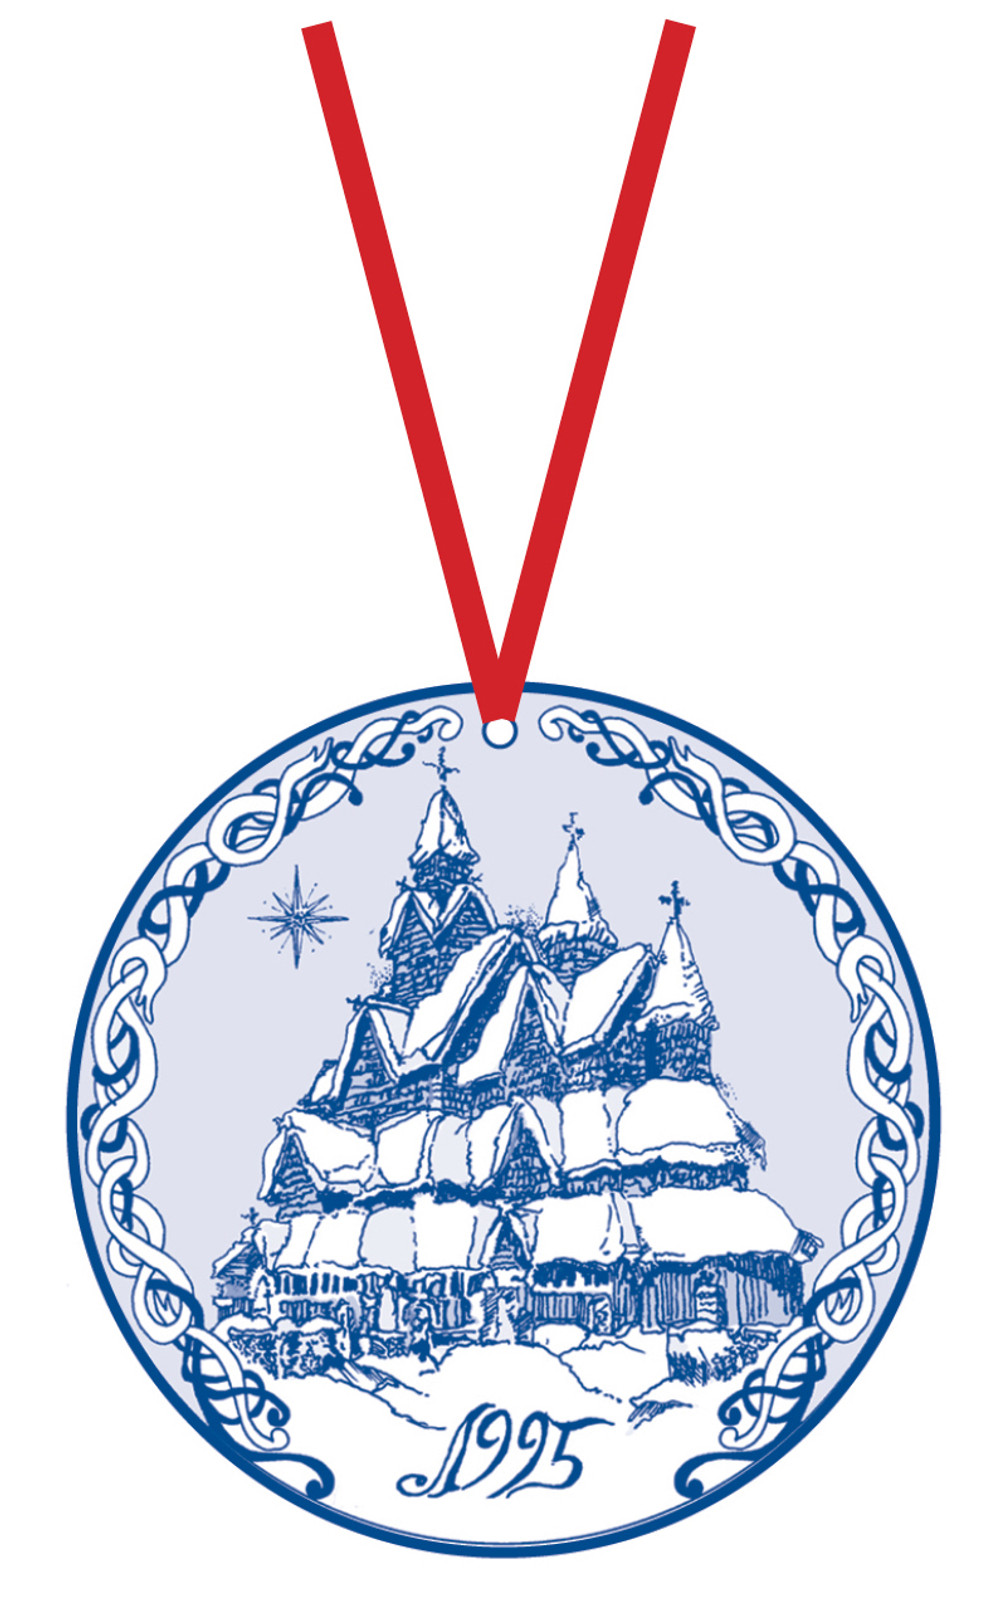 1995 Stav Church Ornament - Heddal. Made by Norse Traditions and available at The Nordic Shop.